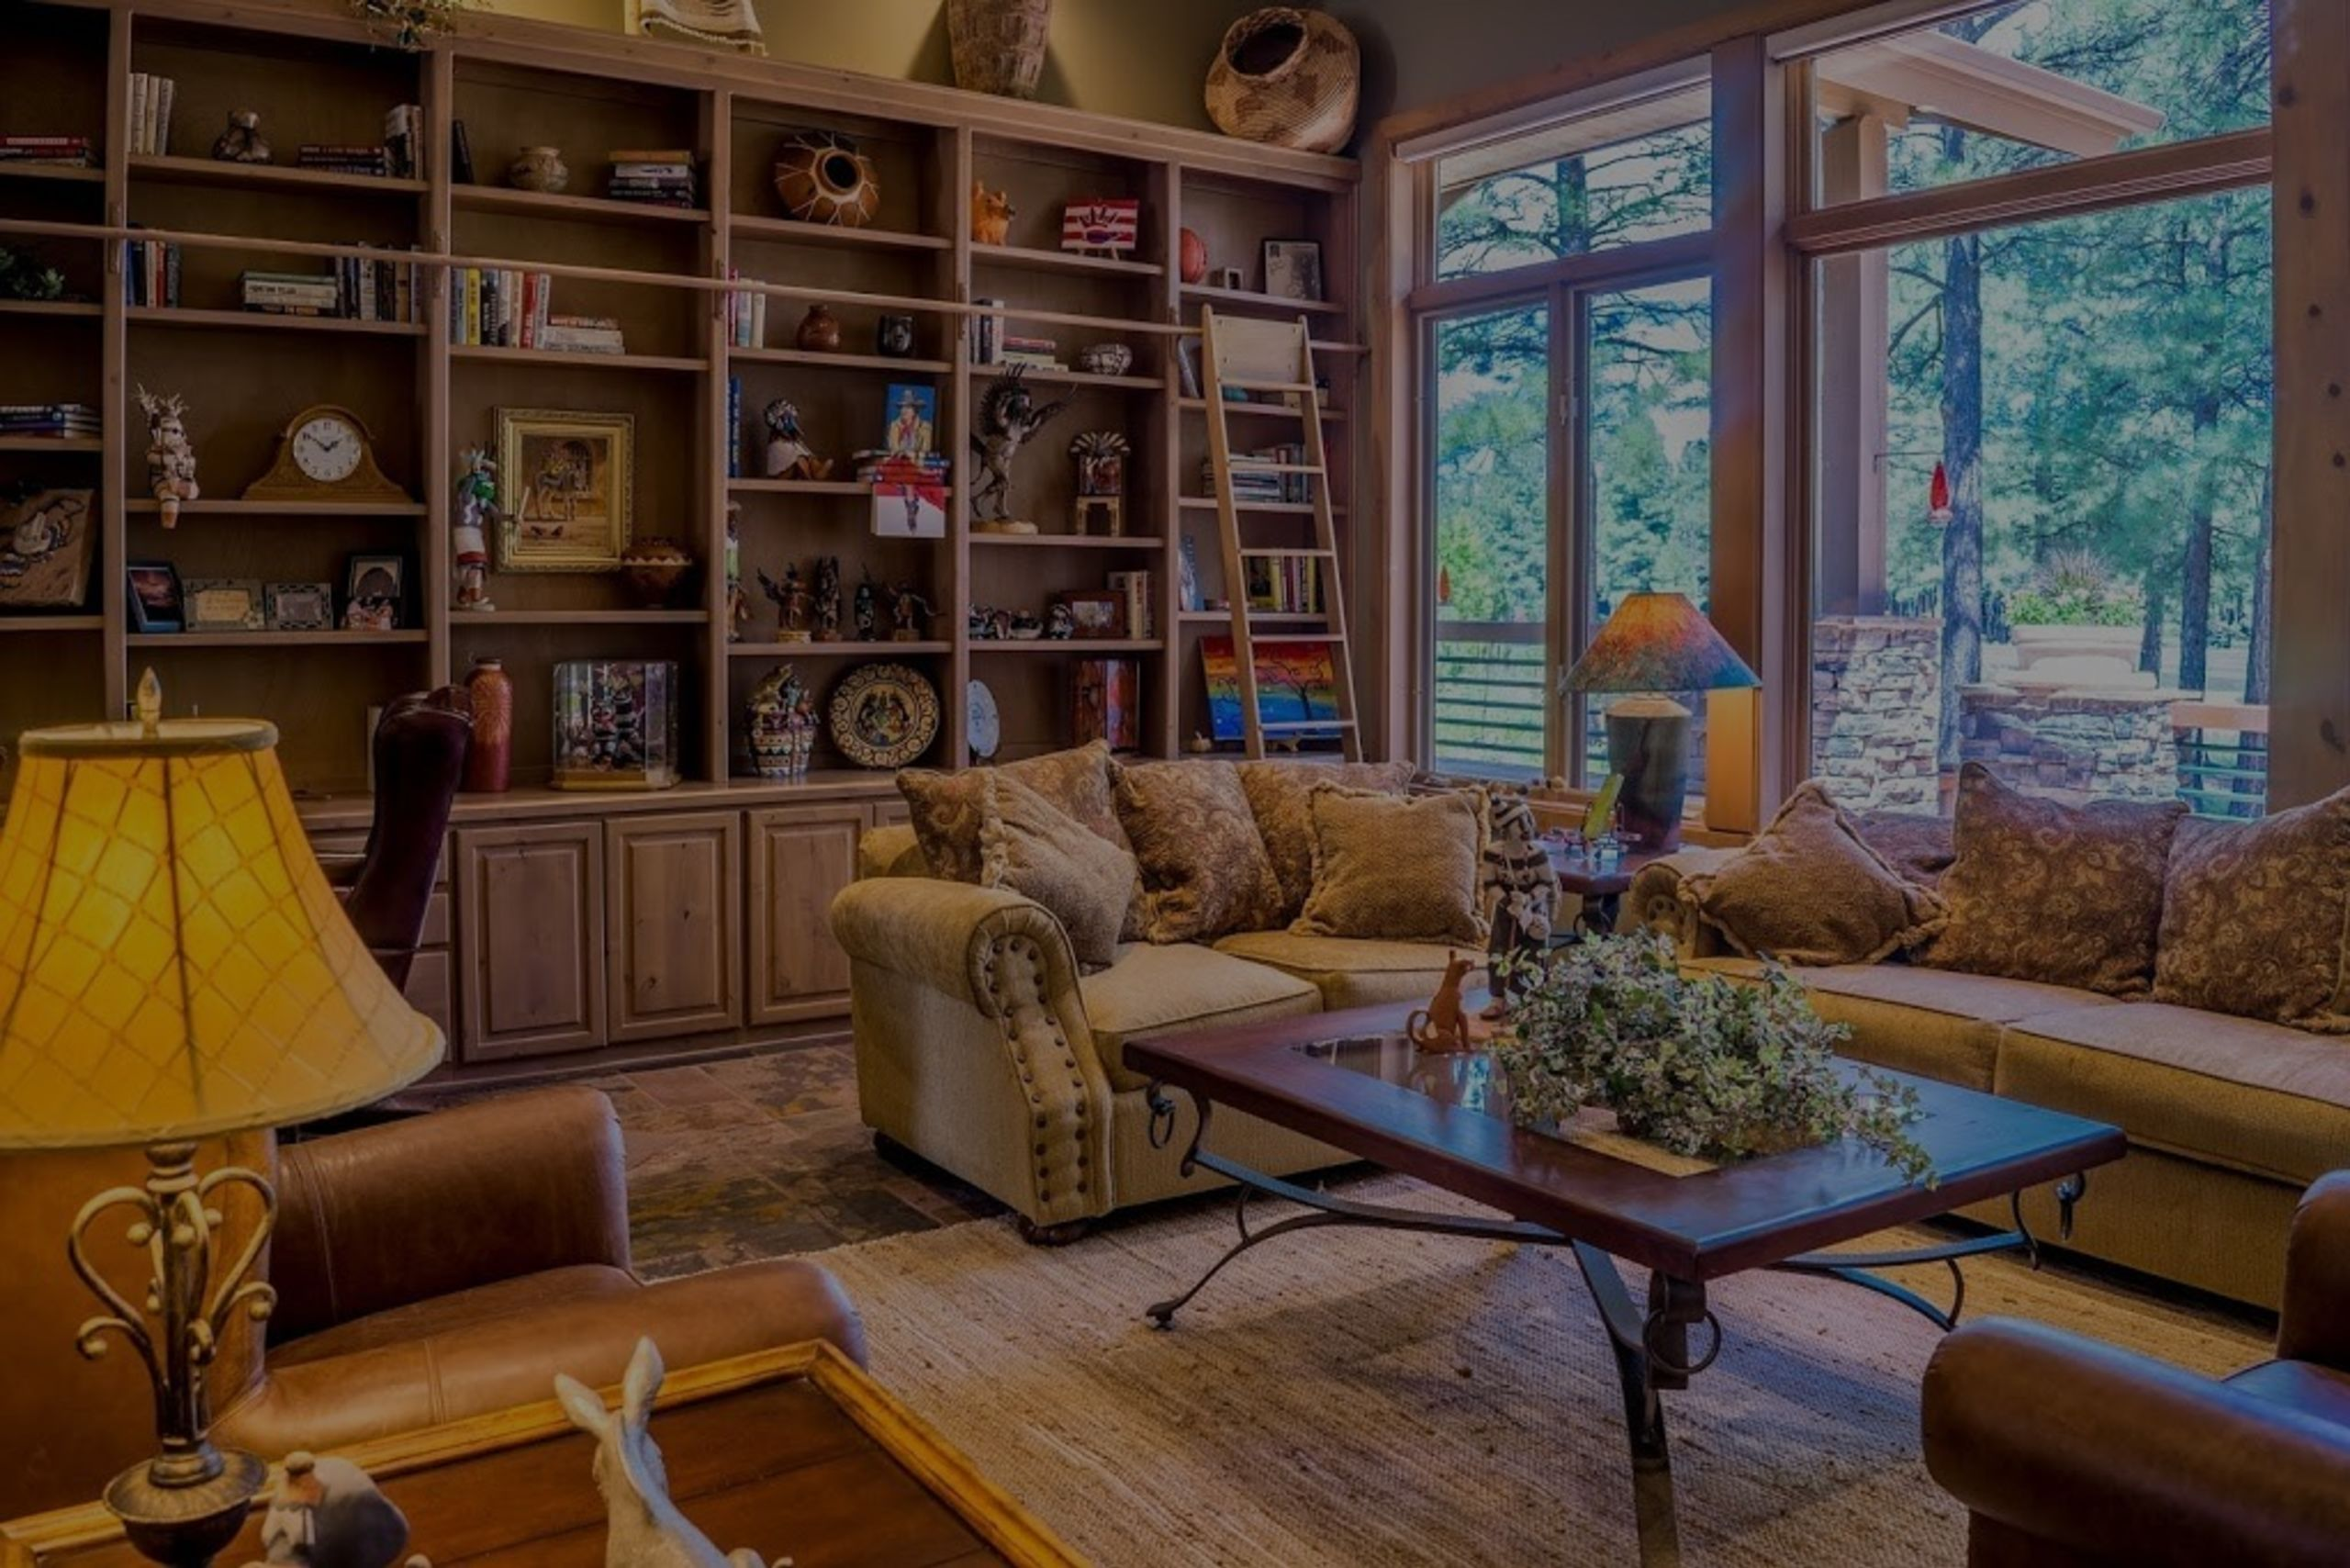 9 Reasons to List & Sell Your House This Fall